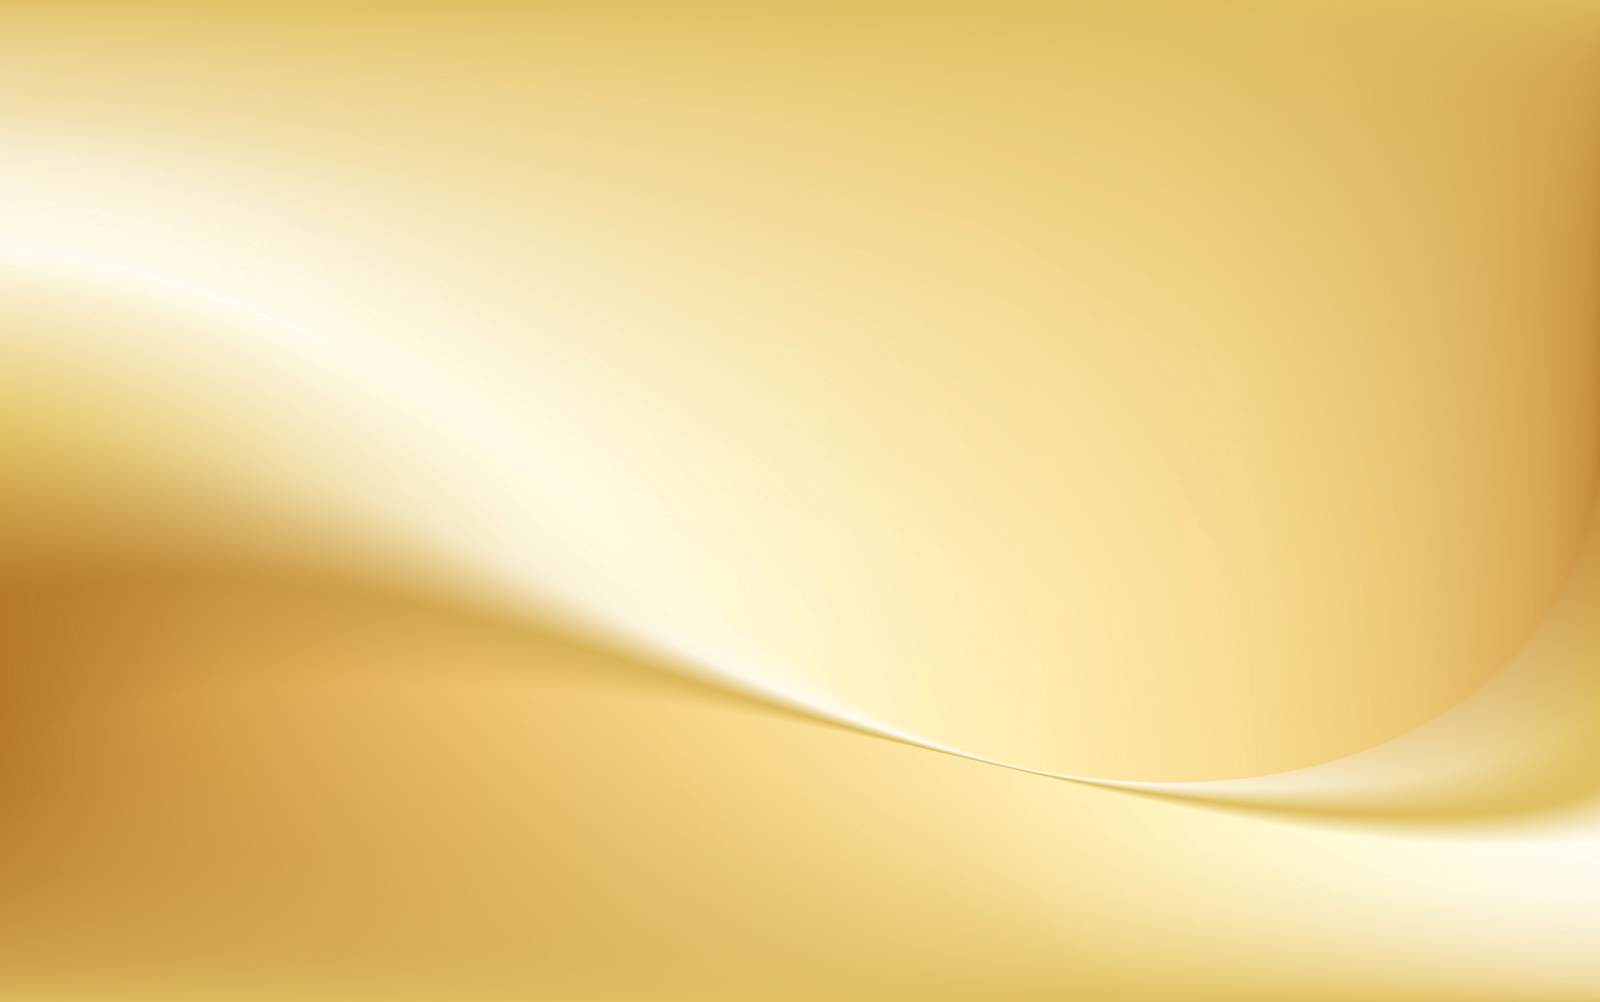 Gold Background Wallpaper - WallpaperSafari